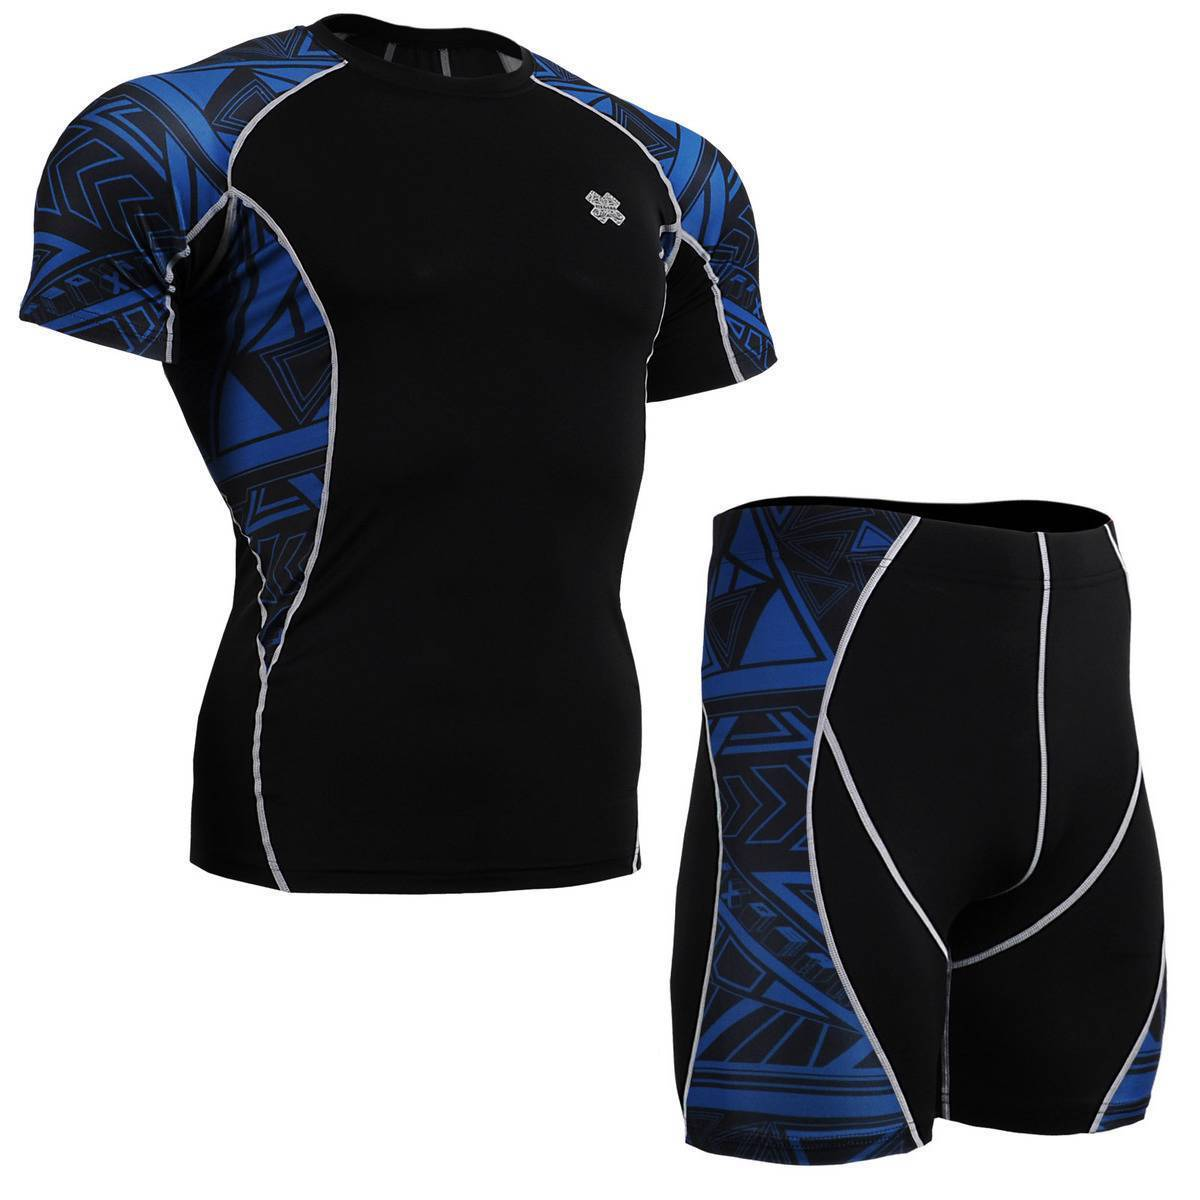 FIXGEAR C2S P2S-B1 SET Compression Shirt & Shorts Skin-tight  MMA Base Layer  factory direct and quick delivery